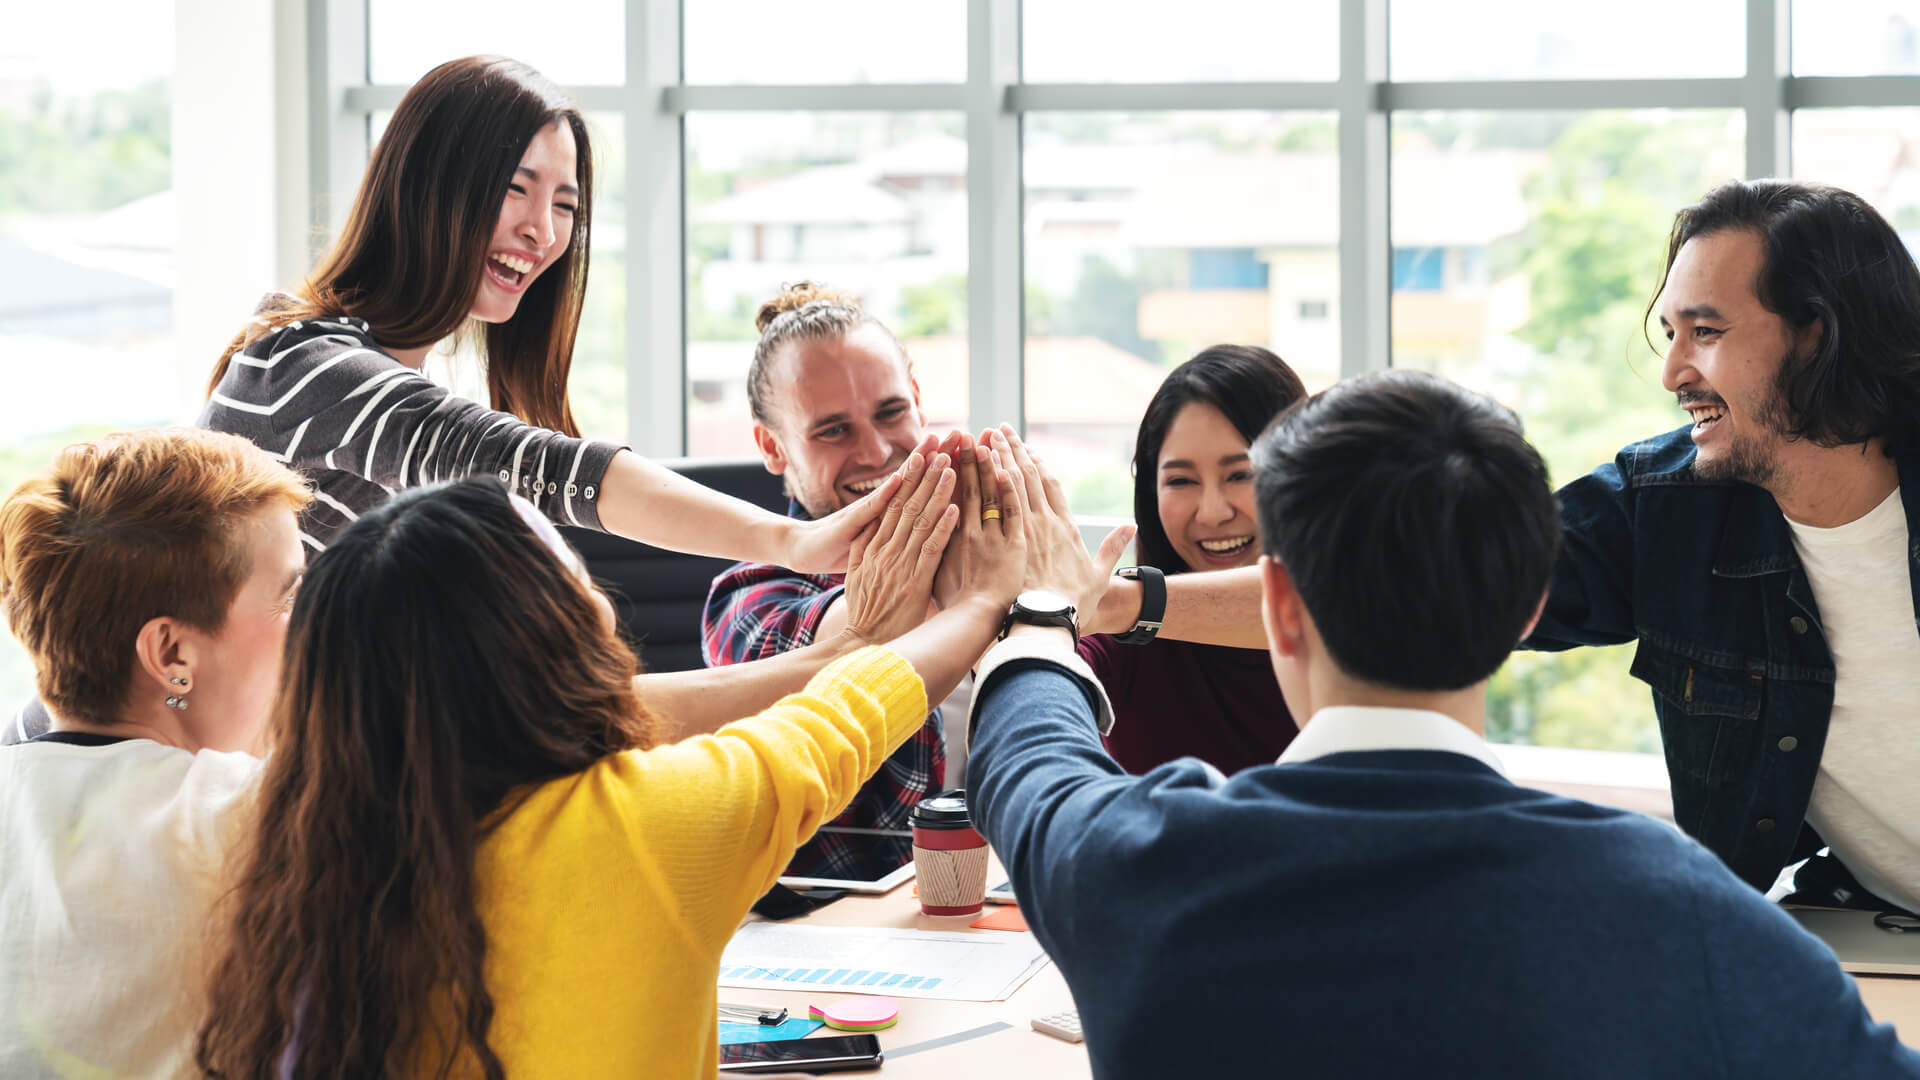 The 5 Key Elements of a Positive Company Culture